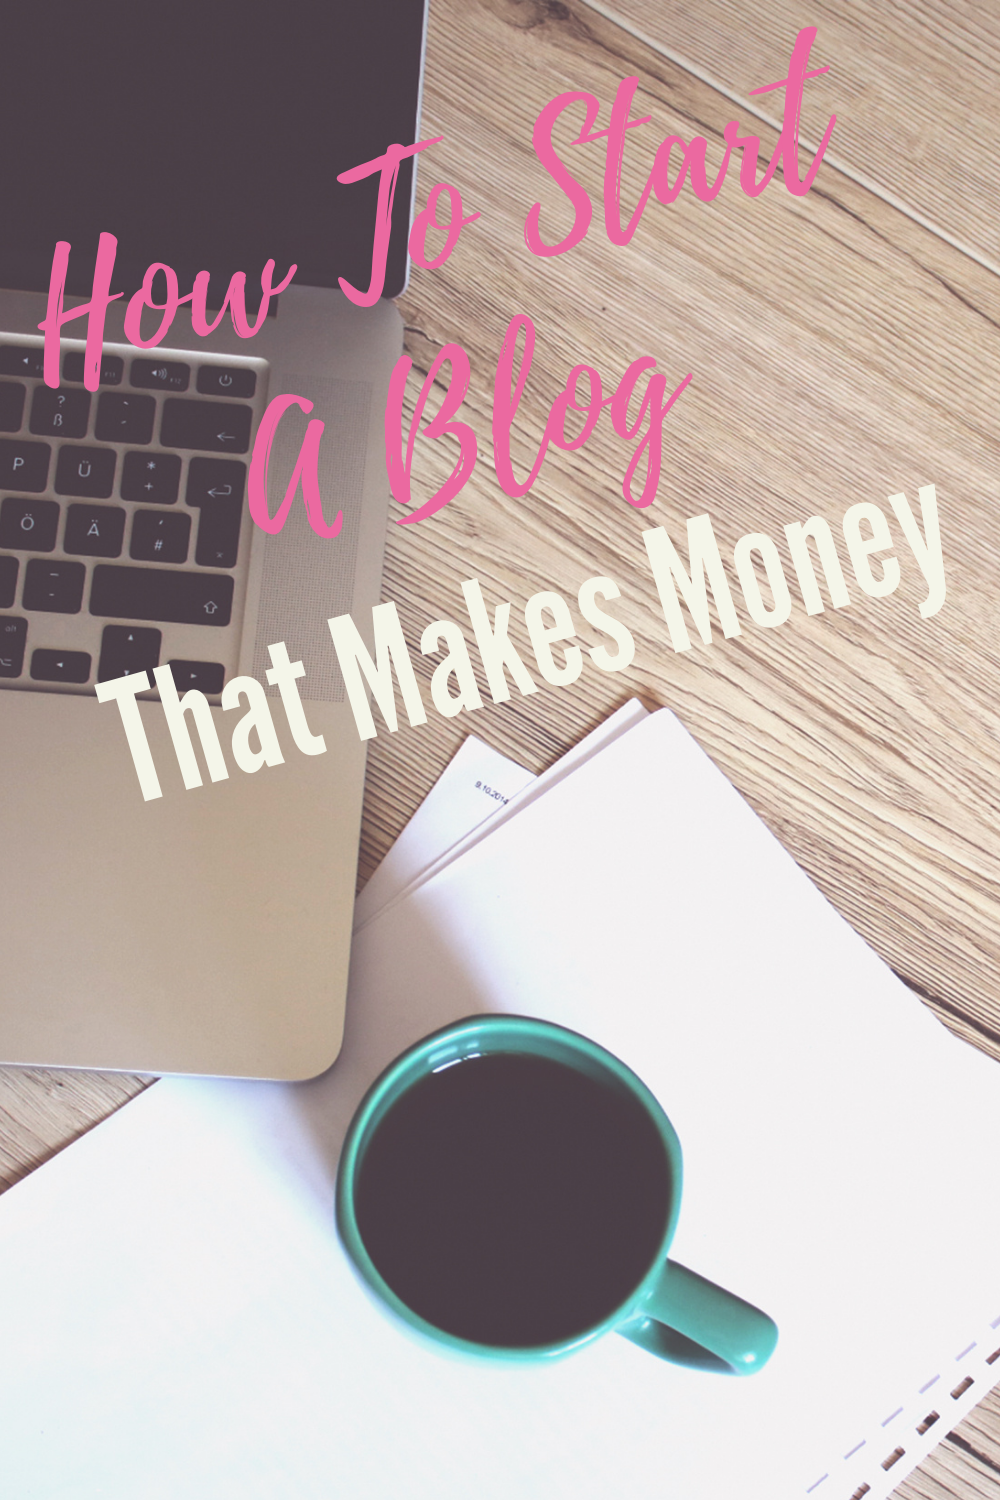 Start your Wordpress, Bluehost website today and start to monetize your blog. If you want to make money blogging, start with a self hosted website where you can control your content. Learn how to start a blog with Bluehost, the most affordable web hosting company. #affiliate